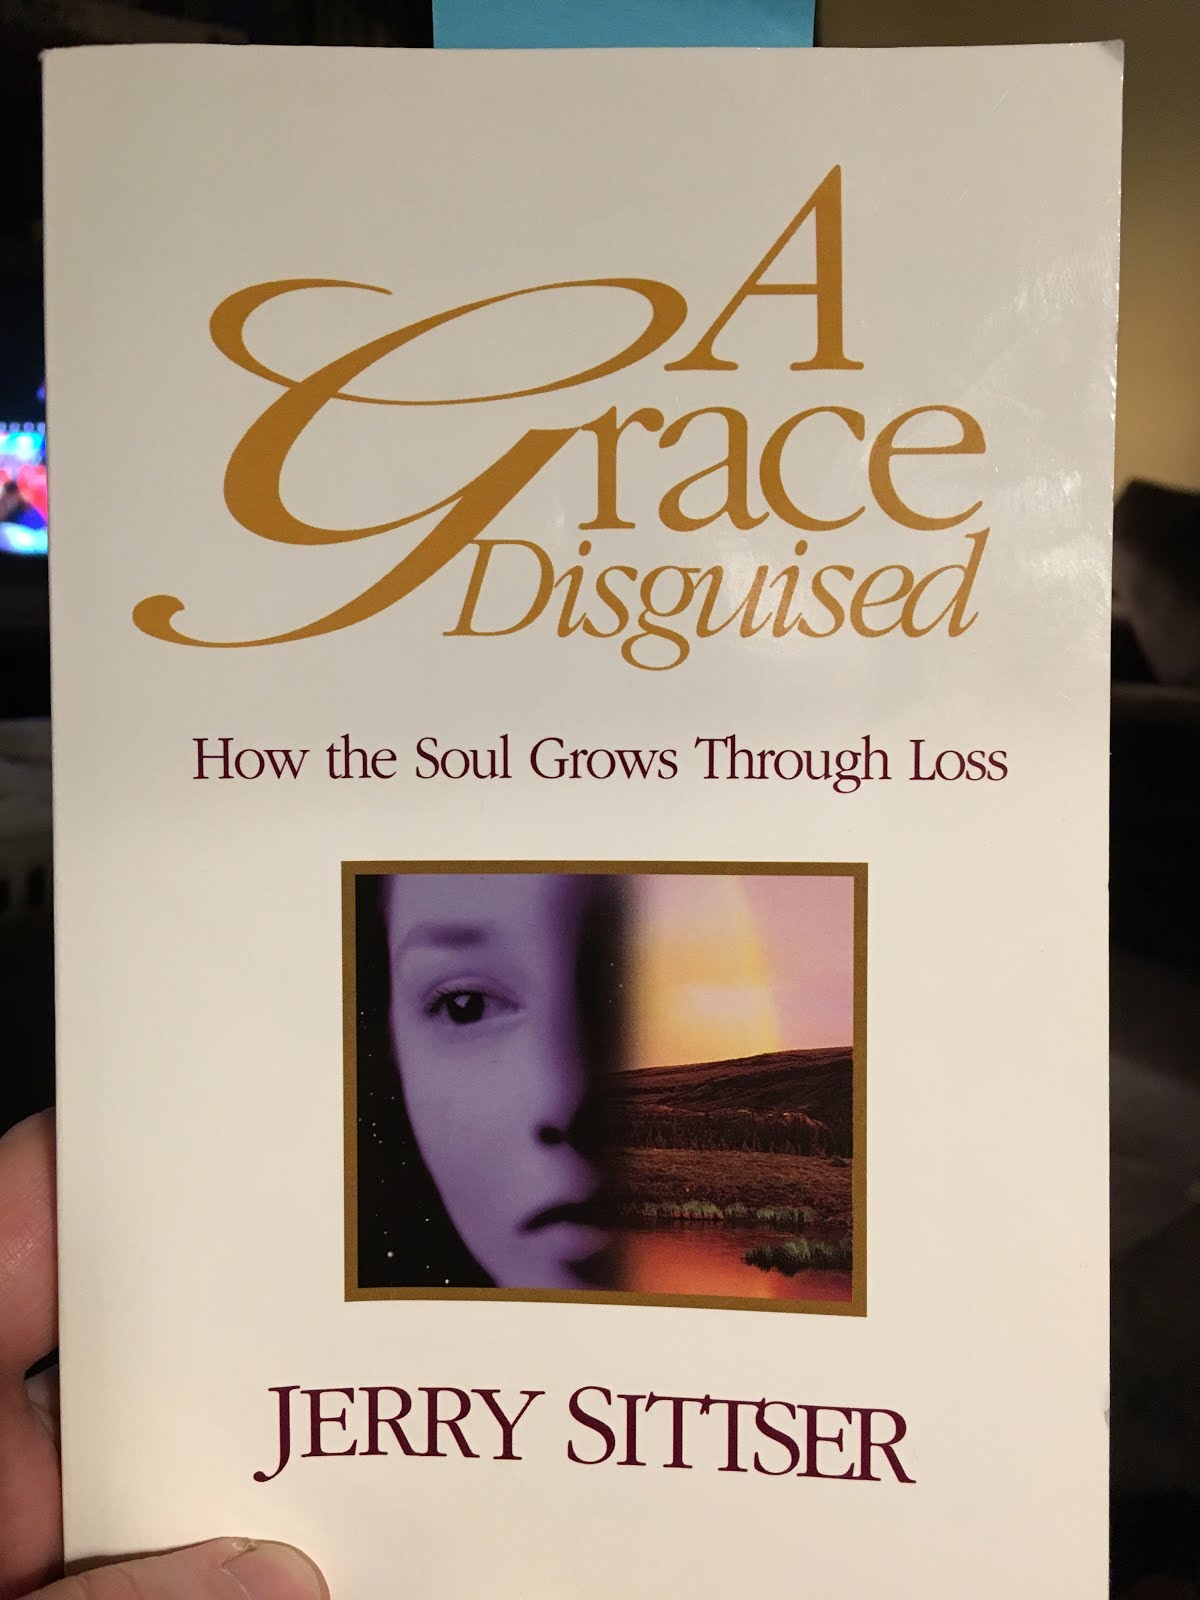 A Grace Disguised. Three nights after my wonderful wife, Teresa, went to be  with the Lord after suddenly and tragically passing away before my eyes on  that ...